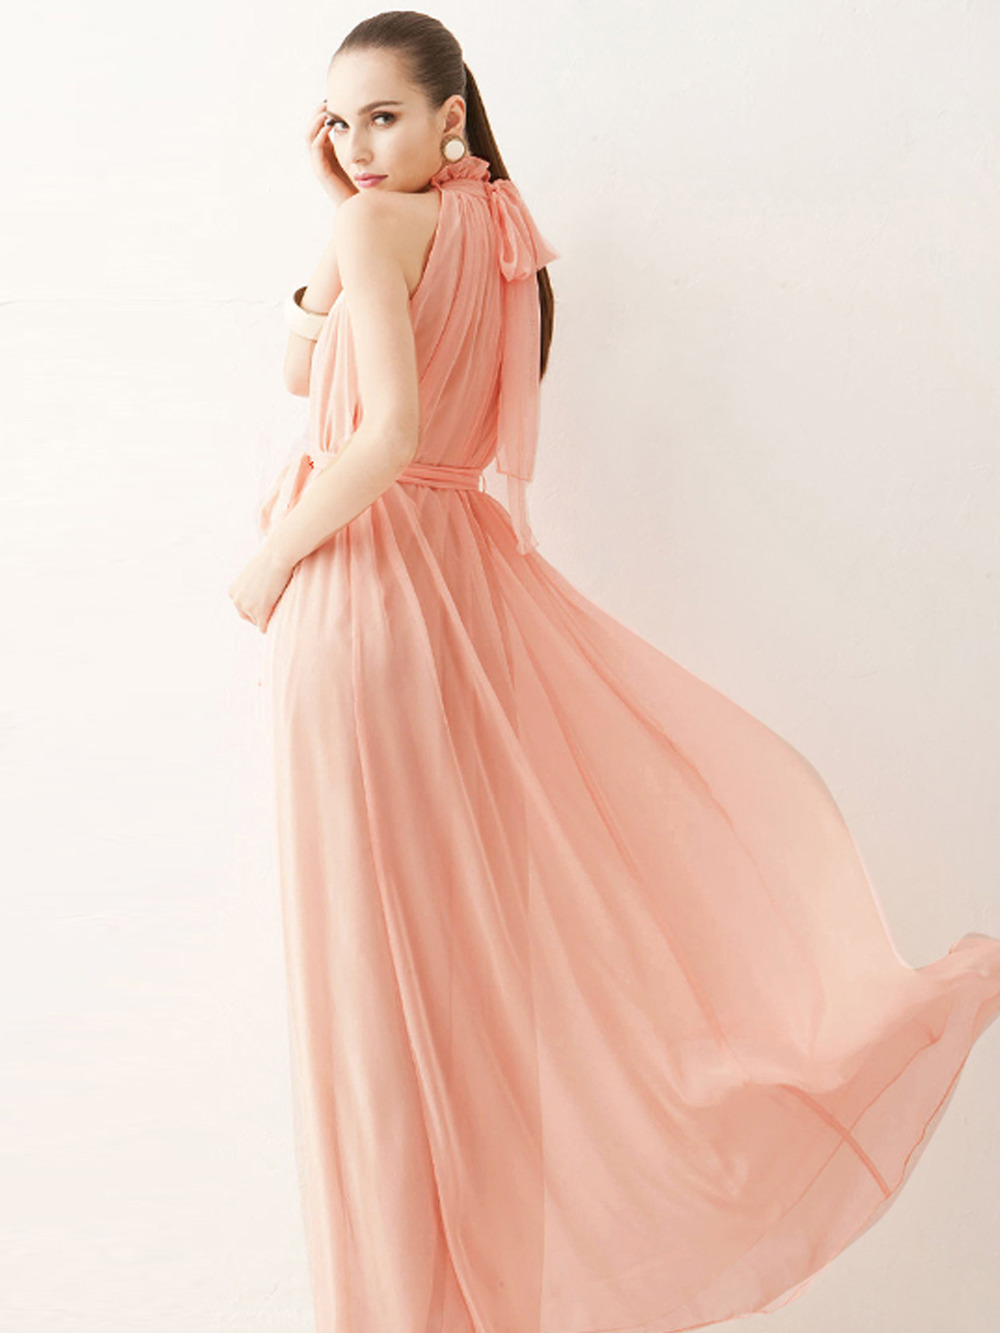 Peach pink long elegant maternity dress gown for summer holiday peach pink long elegant maternity dress gown for summer holiday beach maxi dress in dresses from womens clothing accessories on aliexpress alibaba ombrellifo Image collections